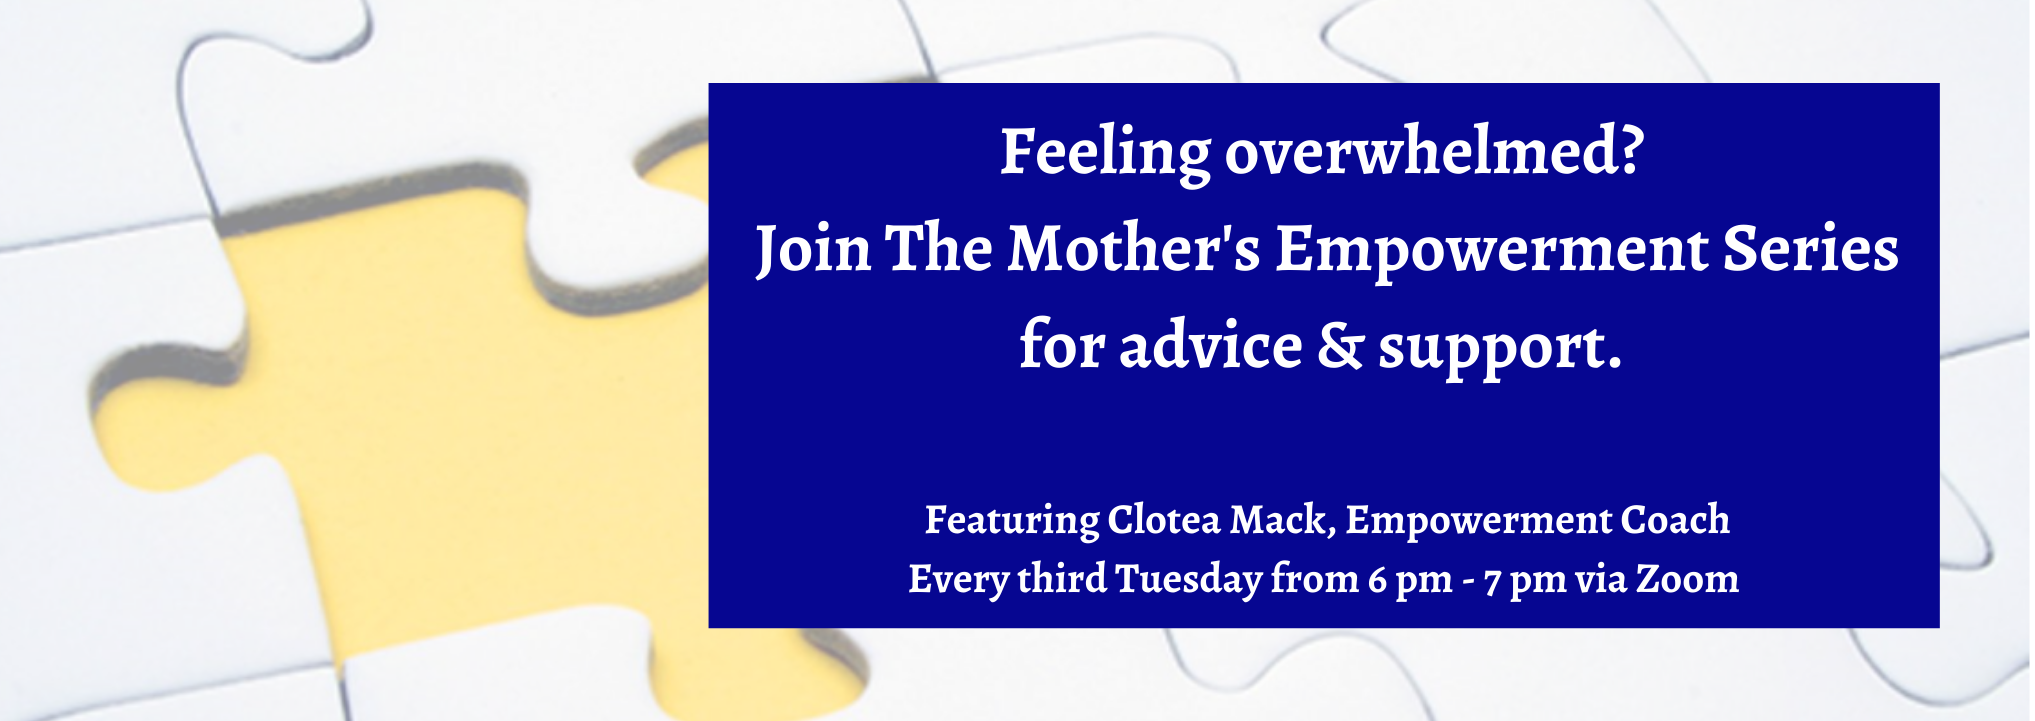 Mothers Empowerment Series Information